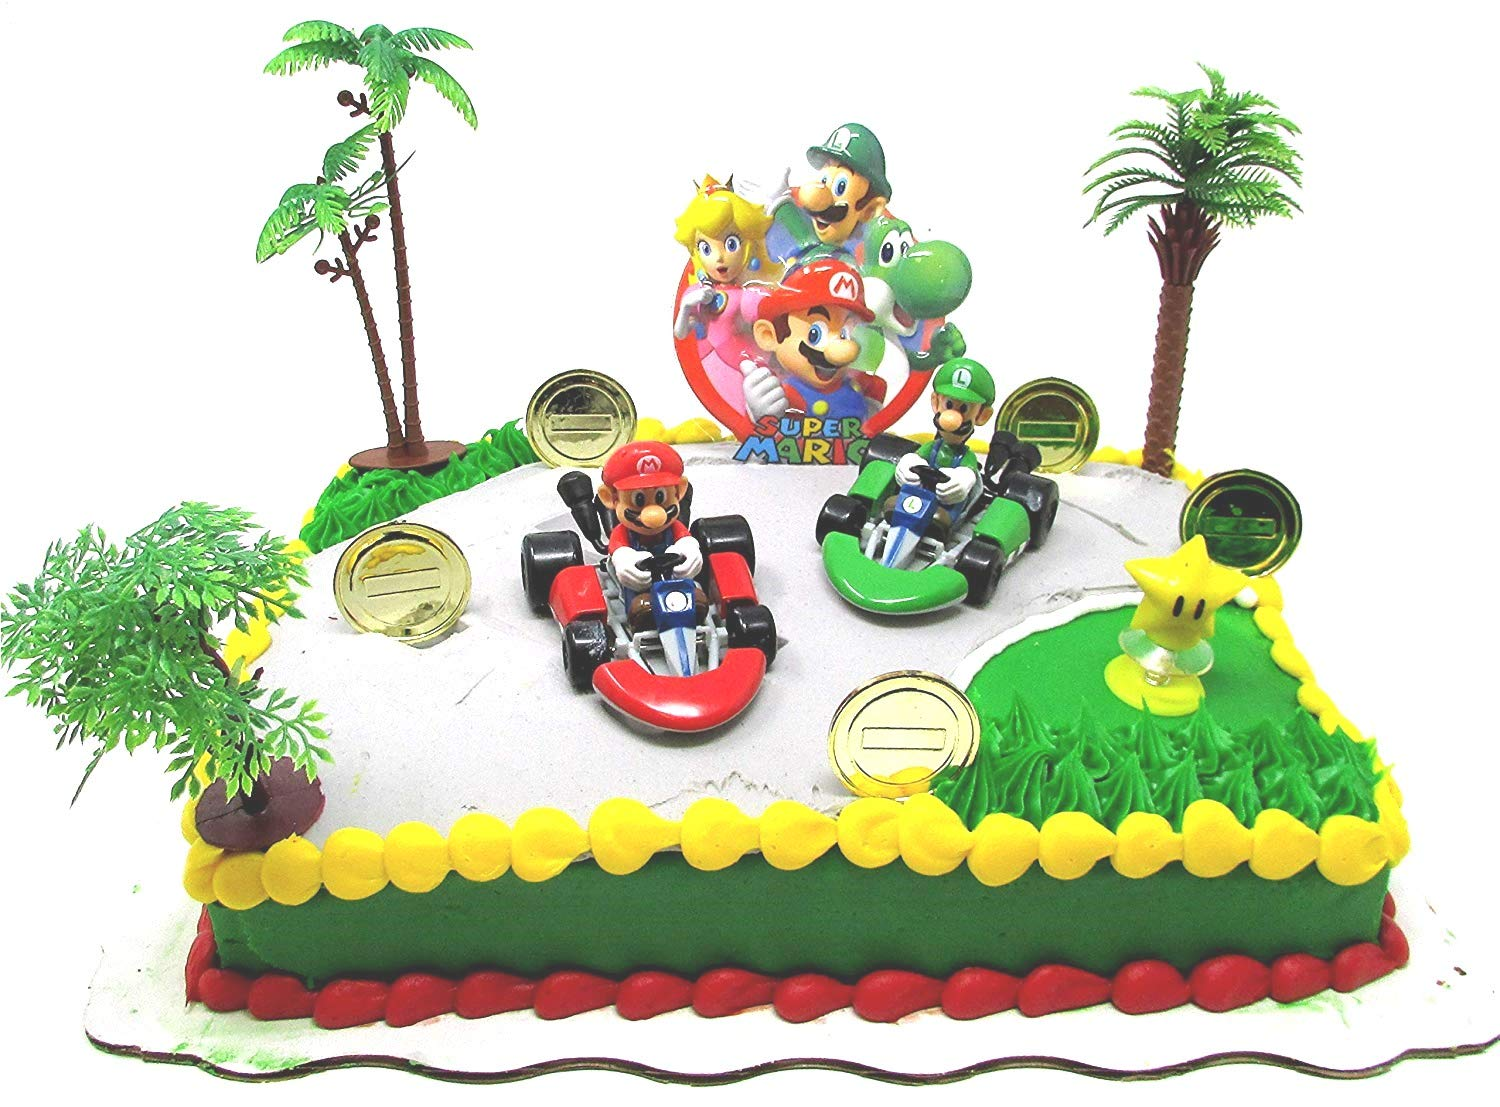 MARIO BROTHERS MARIO KART Racing Themed Birthday Cake Topper Set Featuring Figures and Decorative Themed Accessories